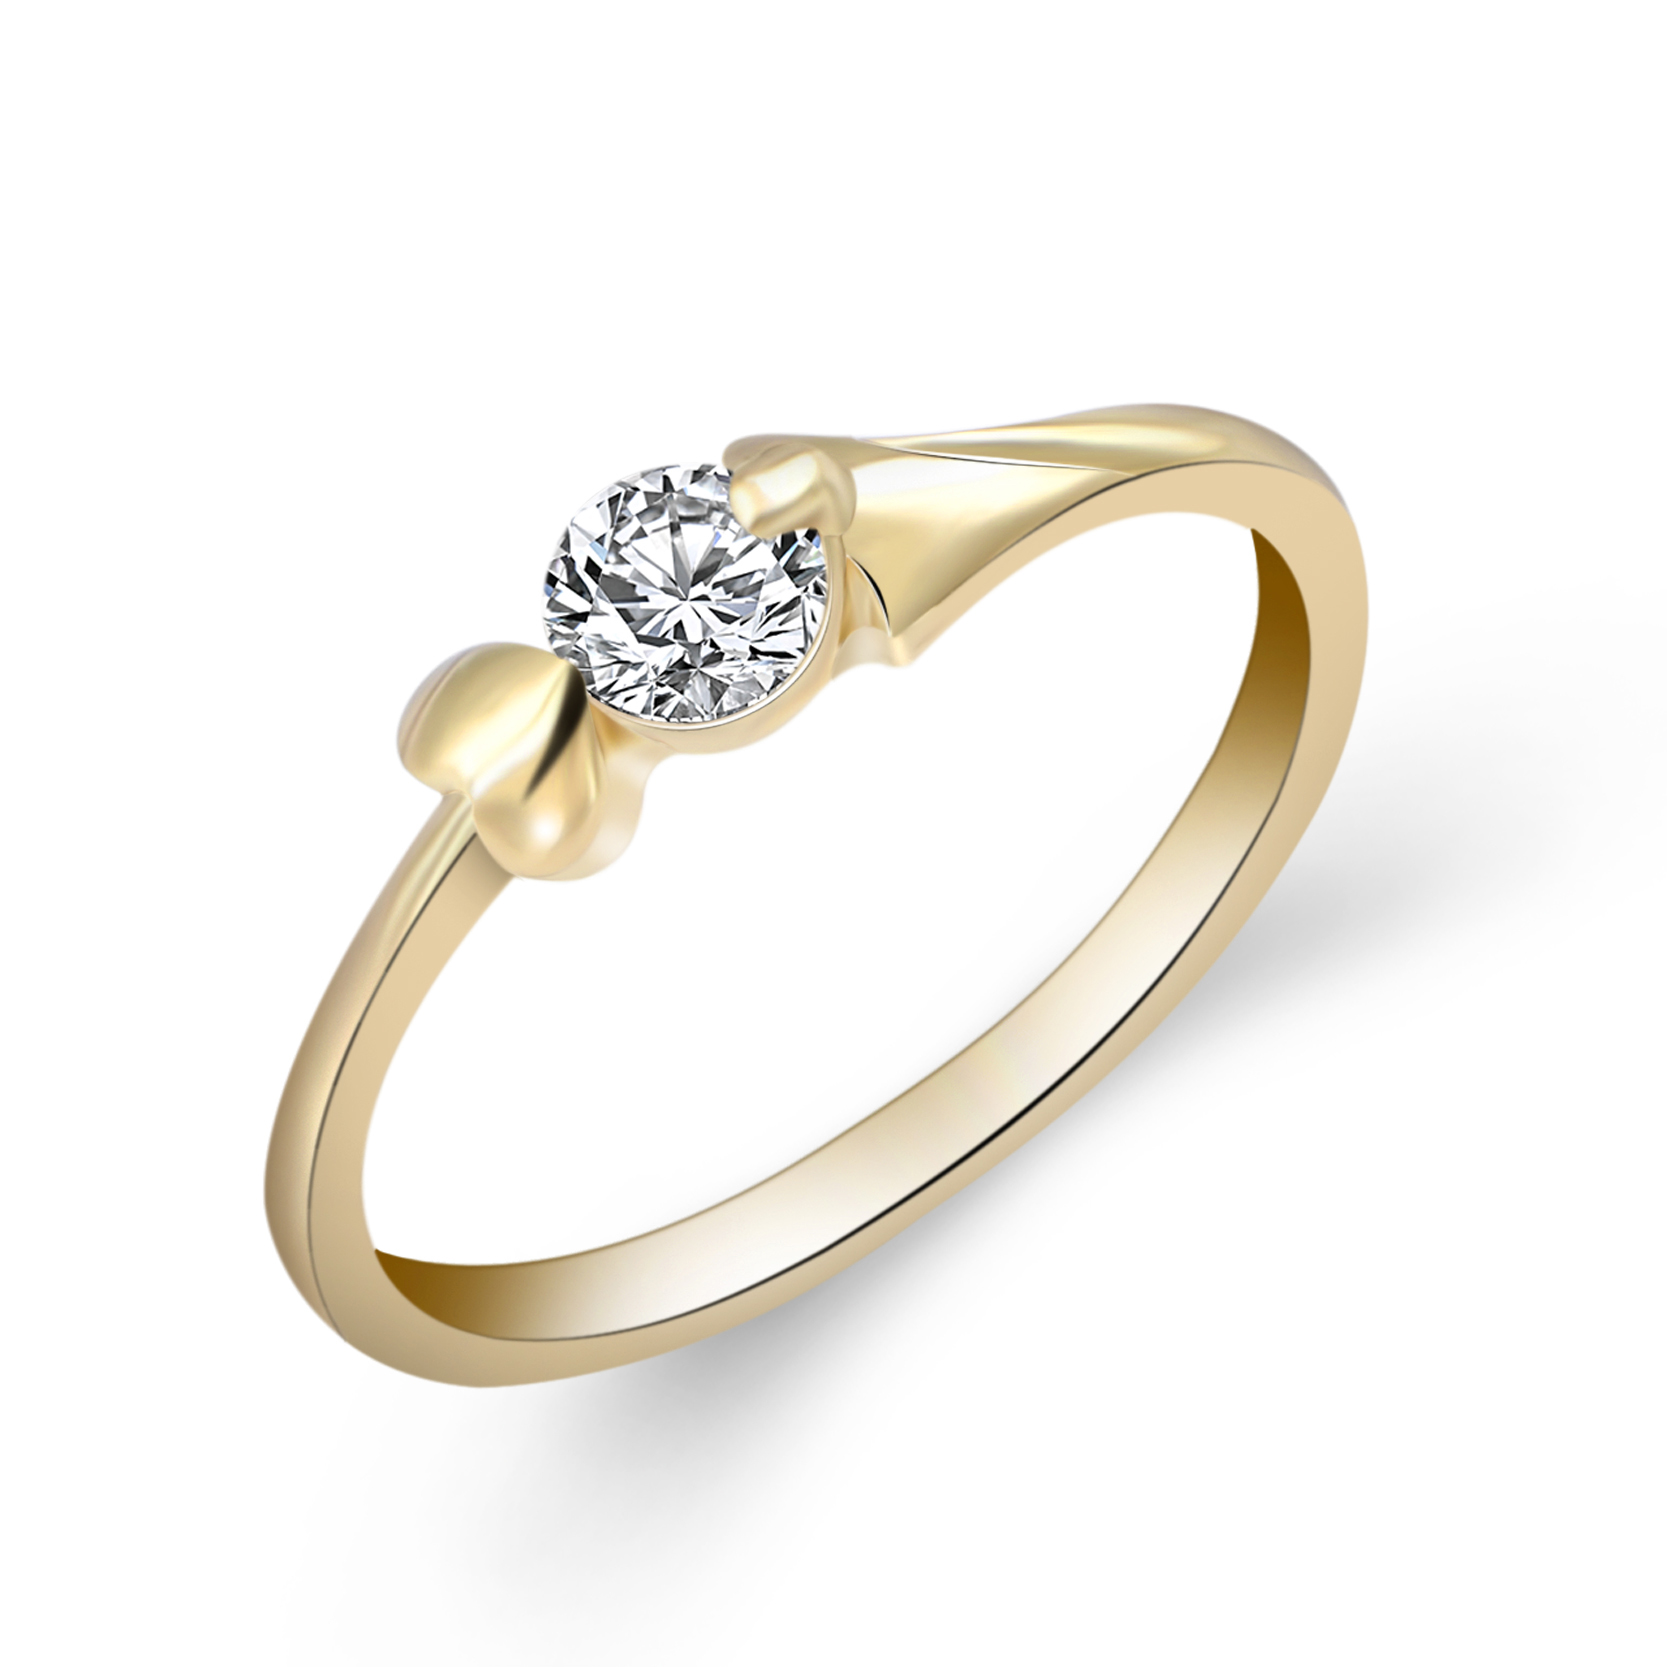 Wedding Jewery Gold Color with Cubic Zirconia Ring for Women Gift Size 5-10